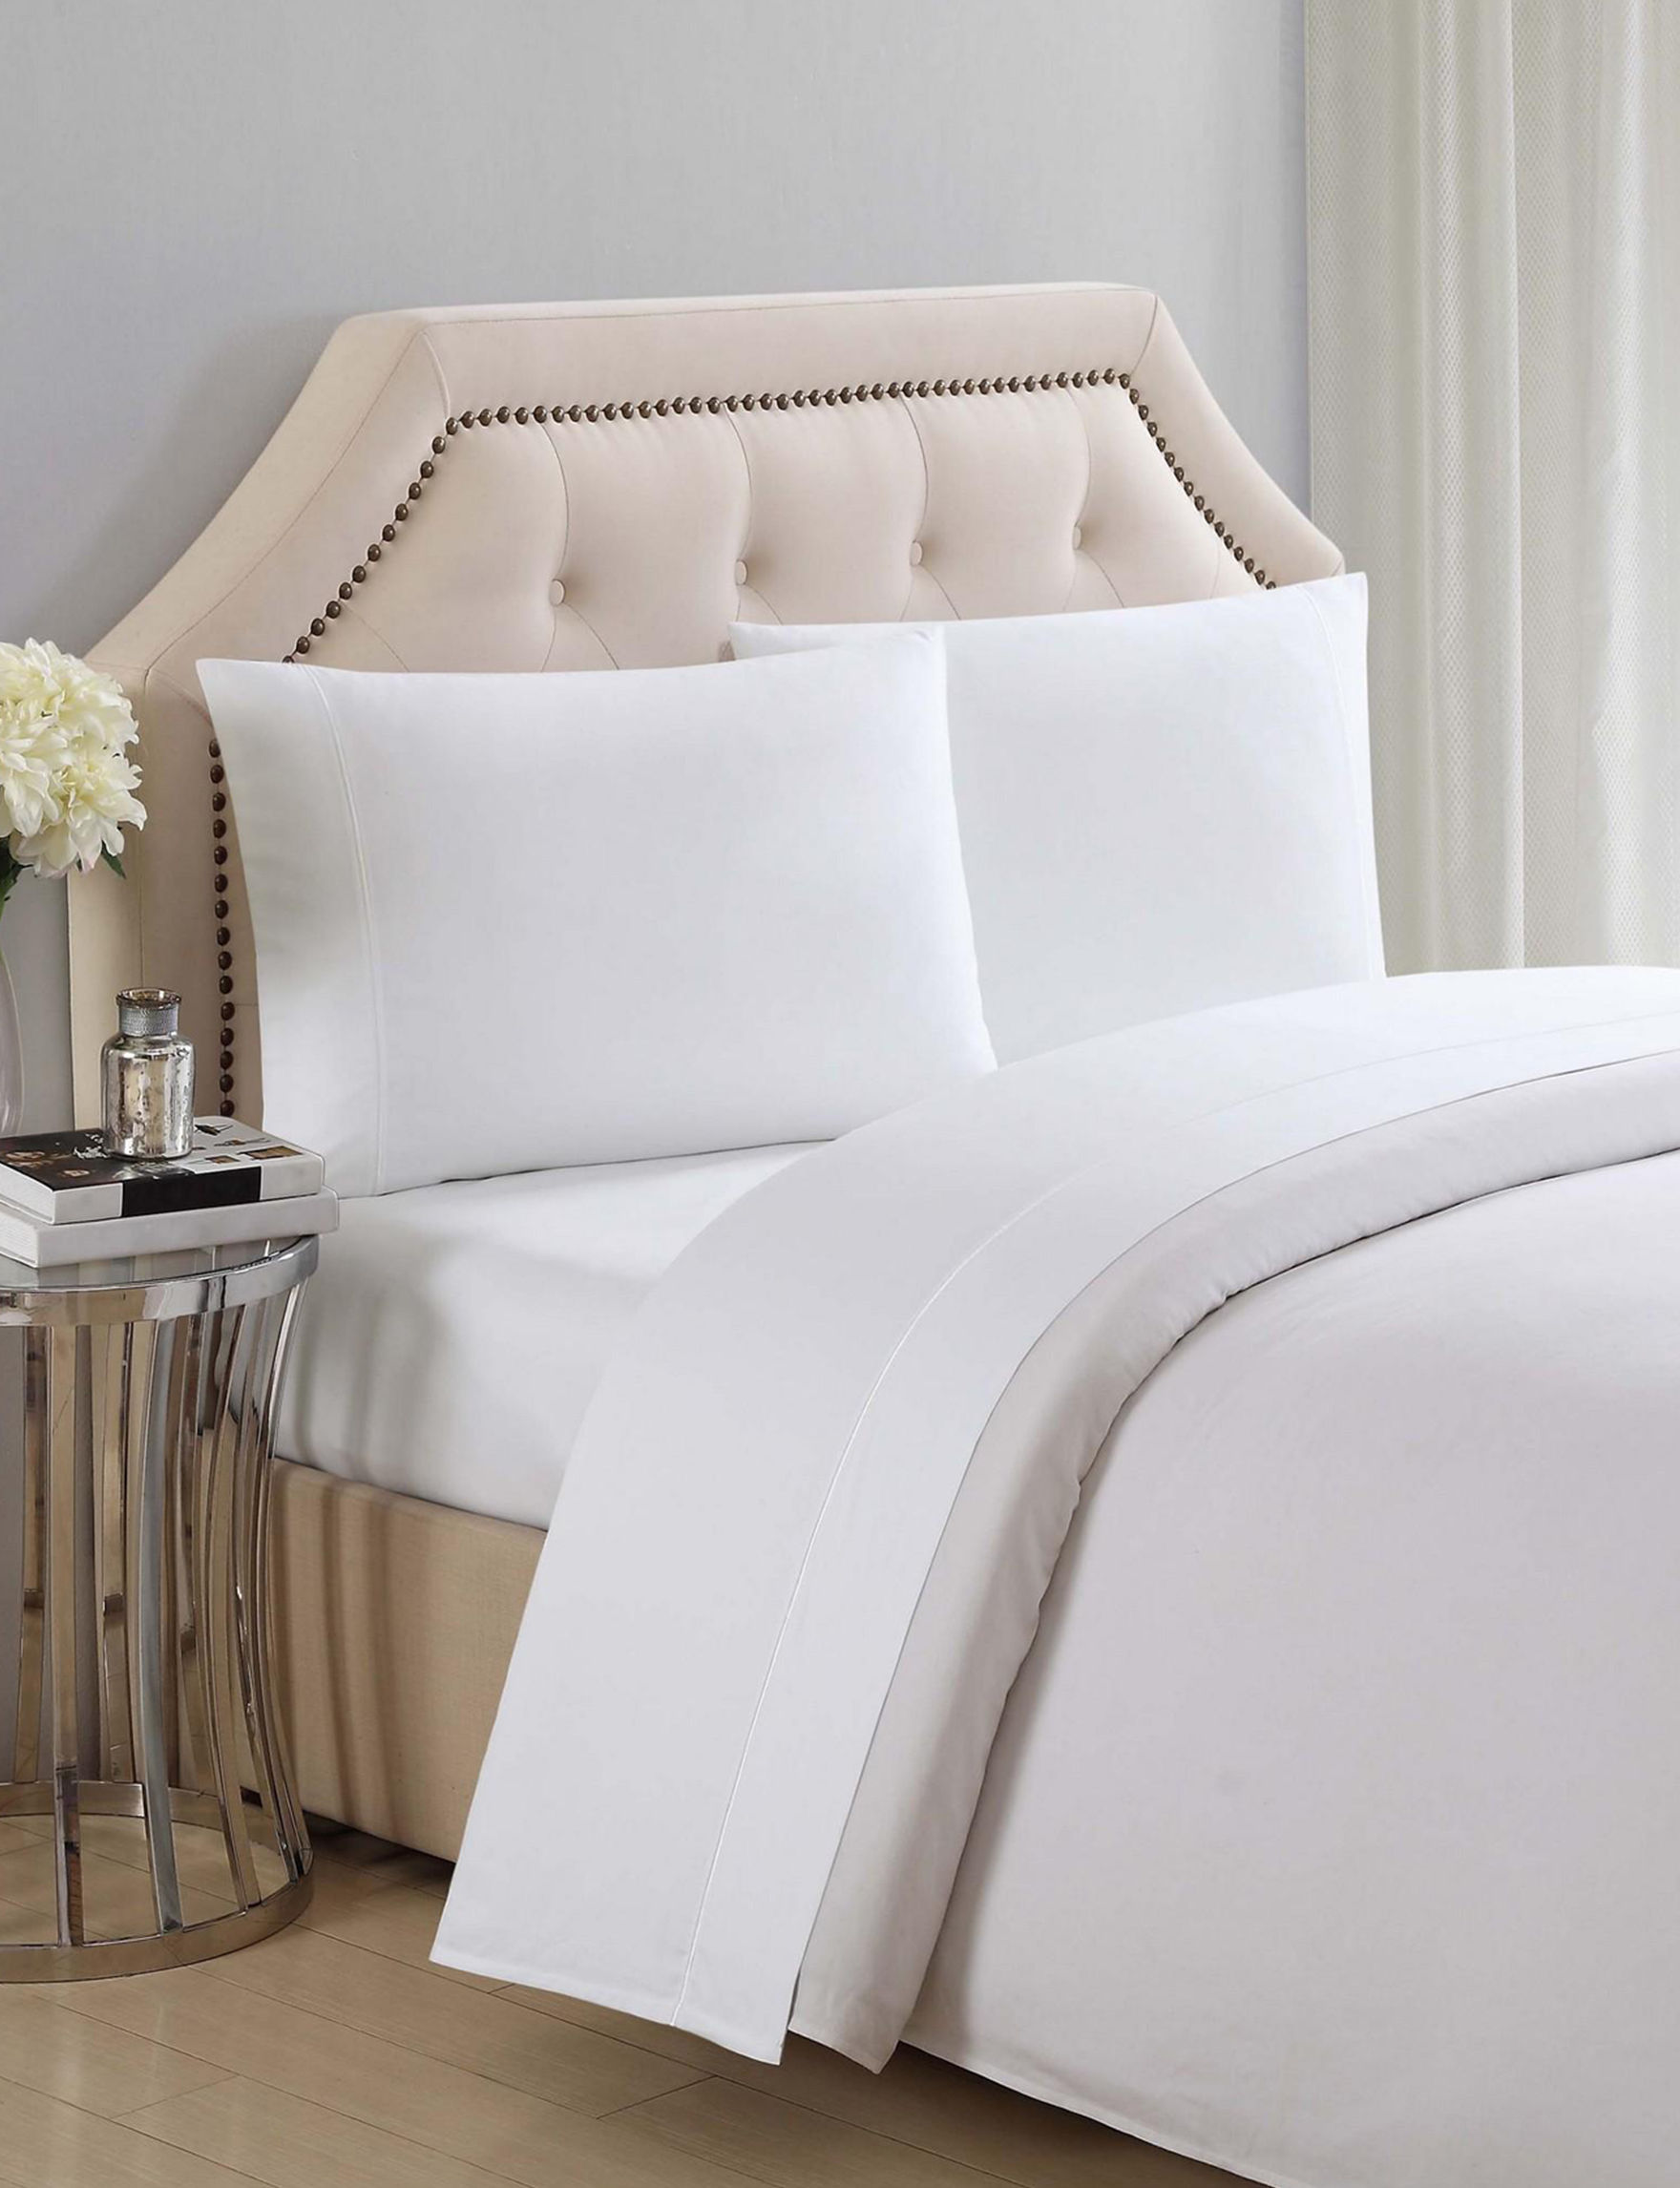 Charisma White Sheets & Pillowcases